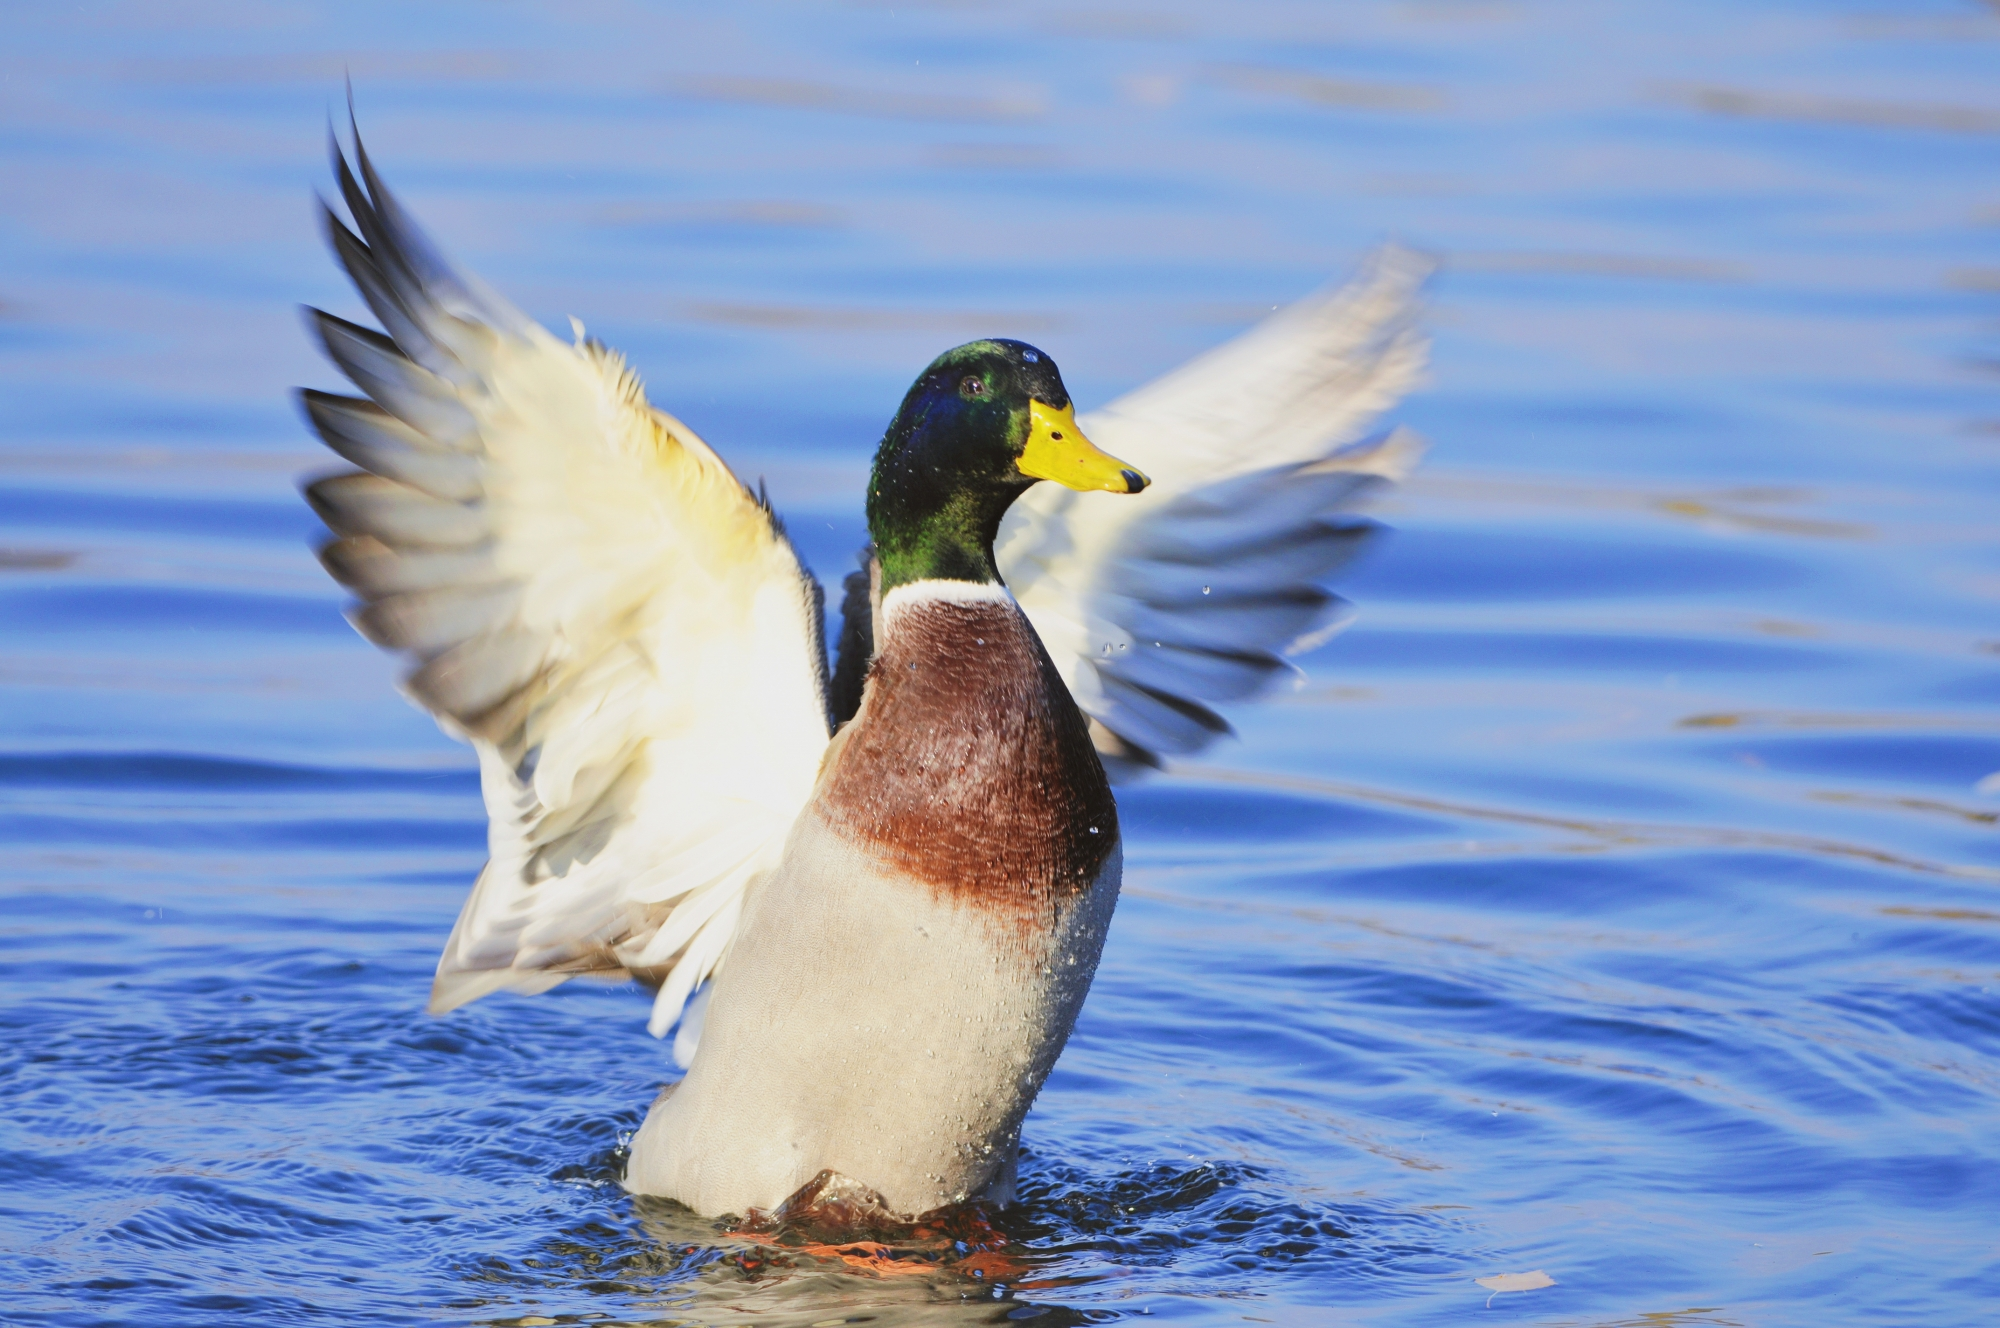 A mallard spreads its wings as it rises out of the water